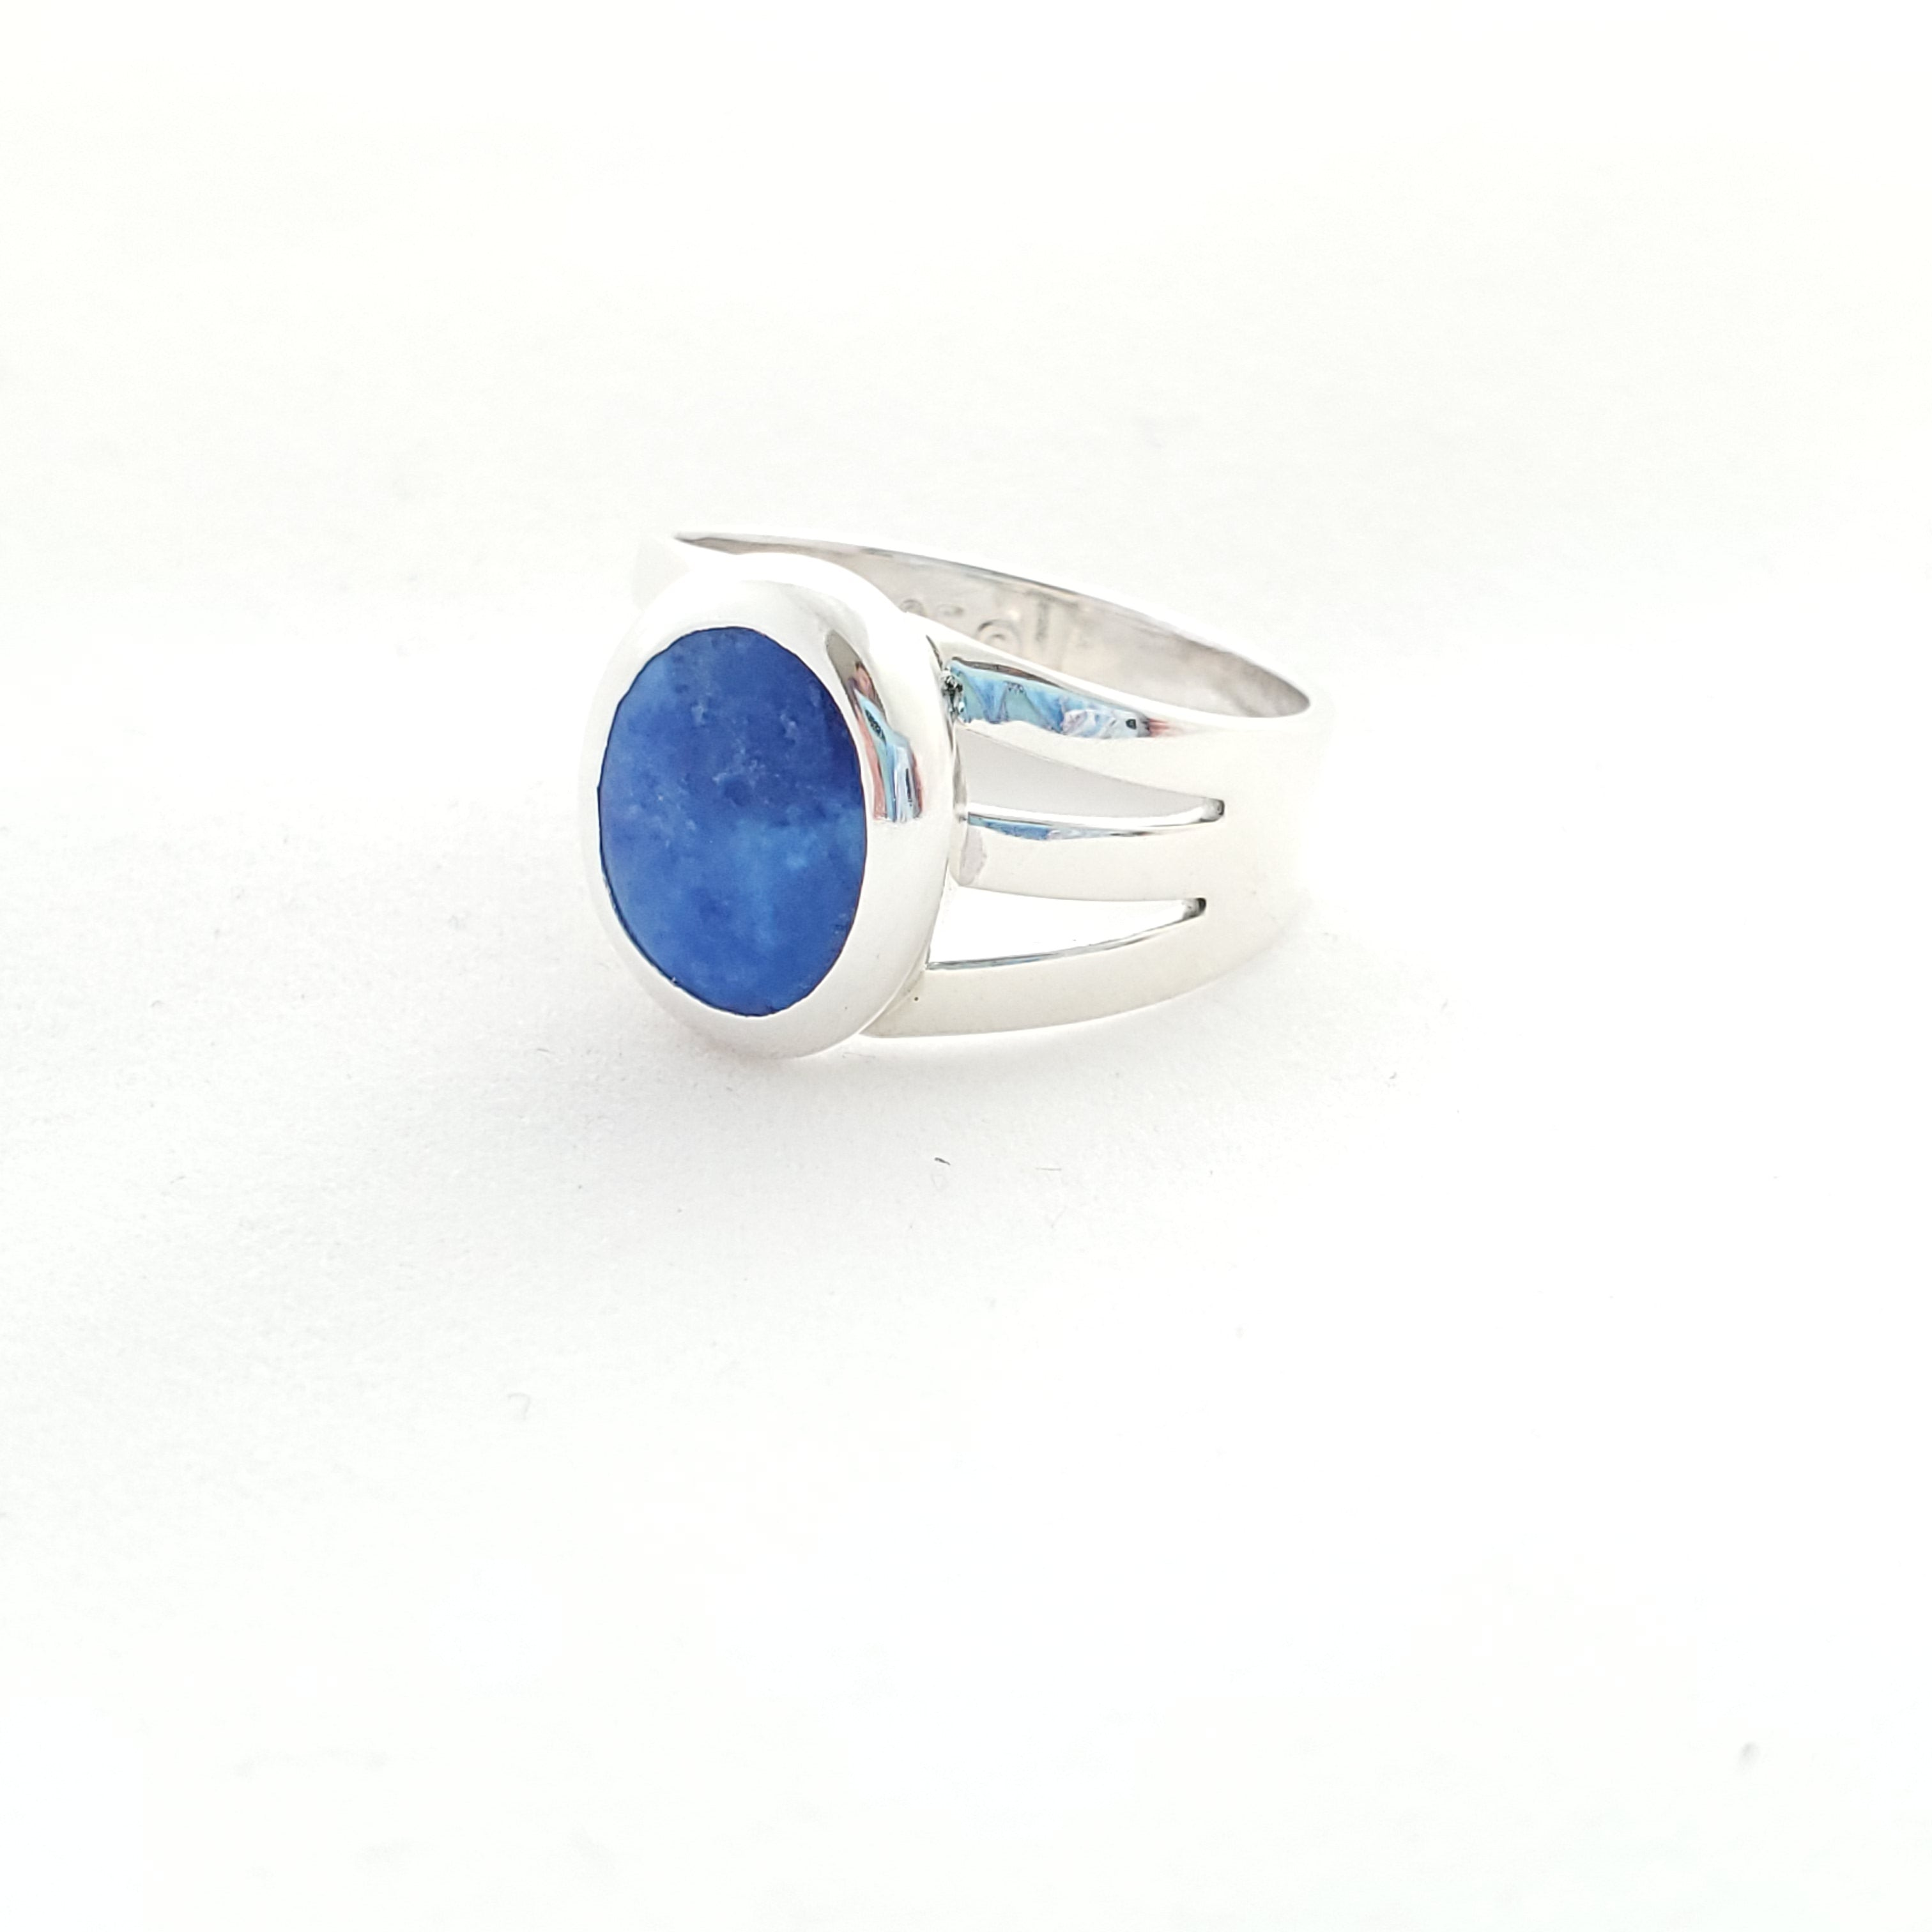 Side view of sodalite ring